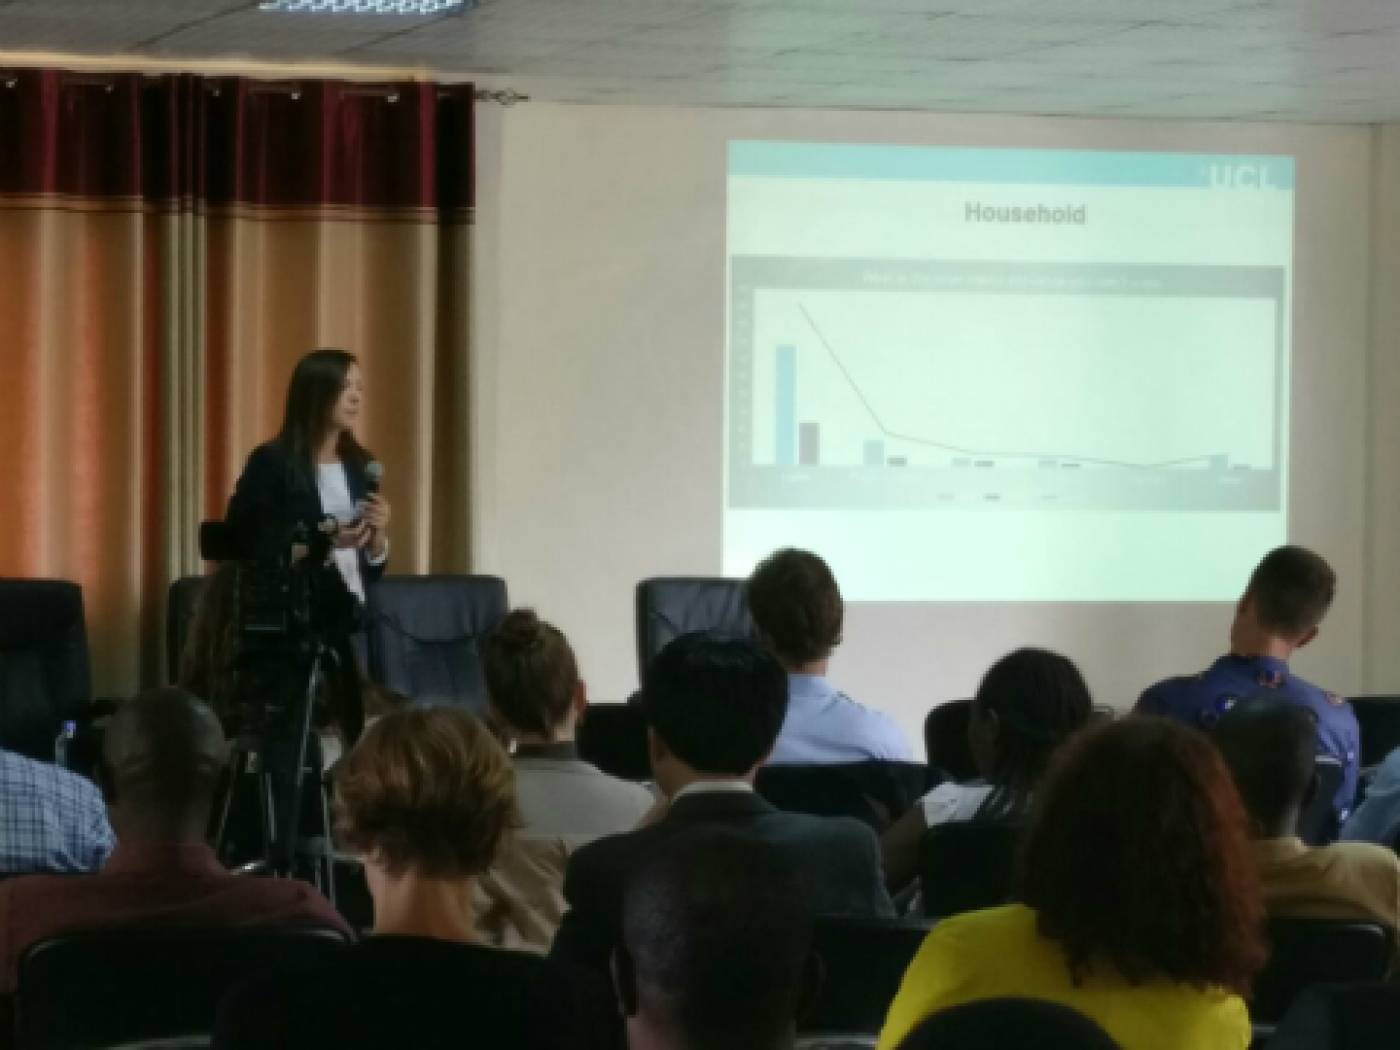 UCL USAR PhD student Iwona Bisaga presenting initial findings of her research focusing on SHS users in Rwanda.